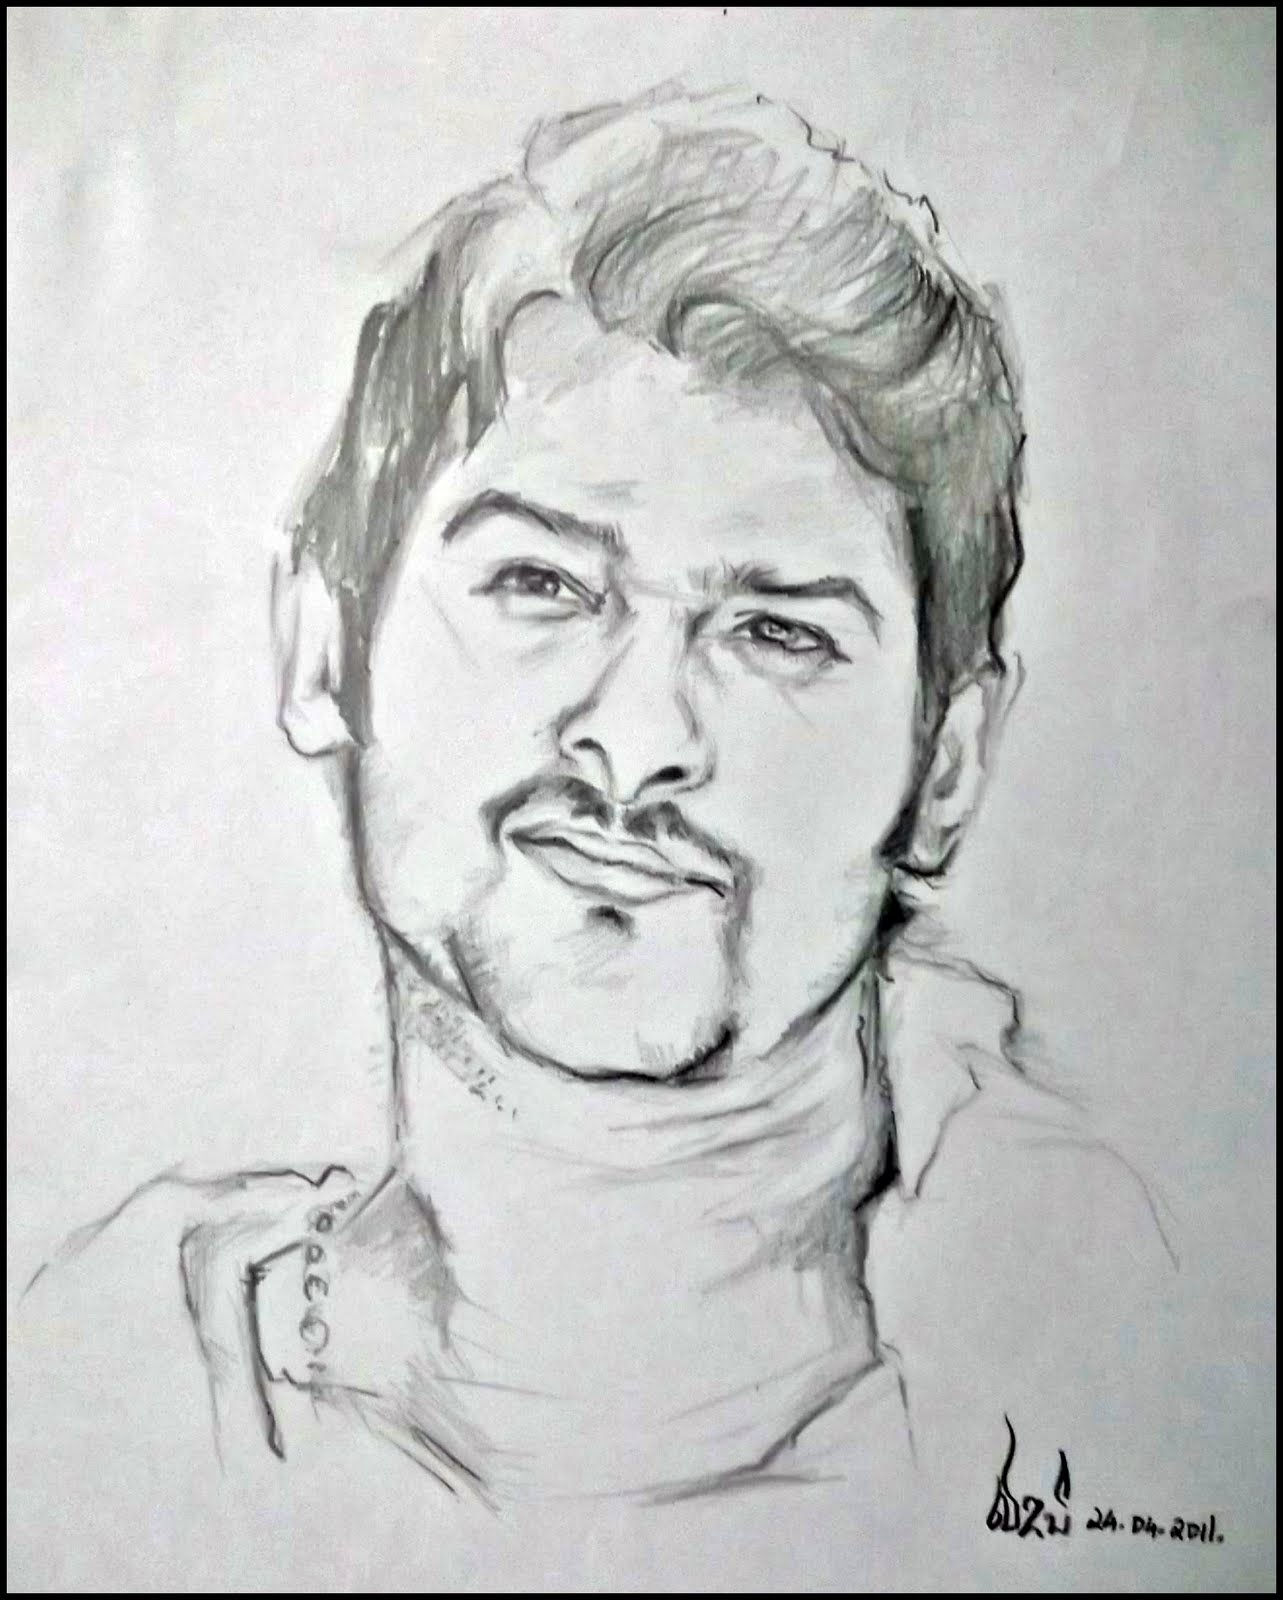 Prabhas pencil portrait